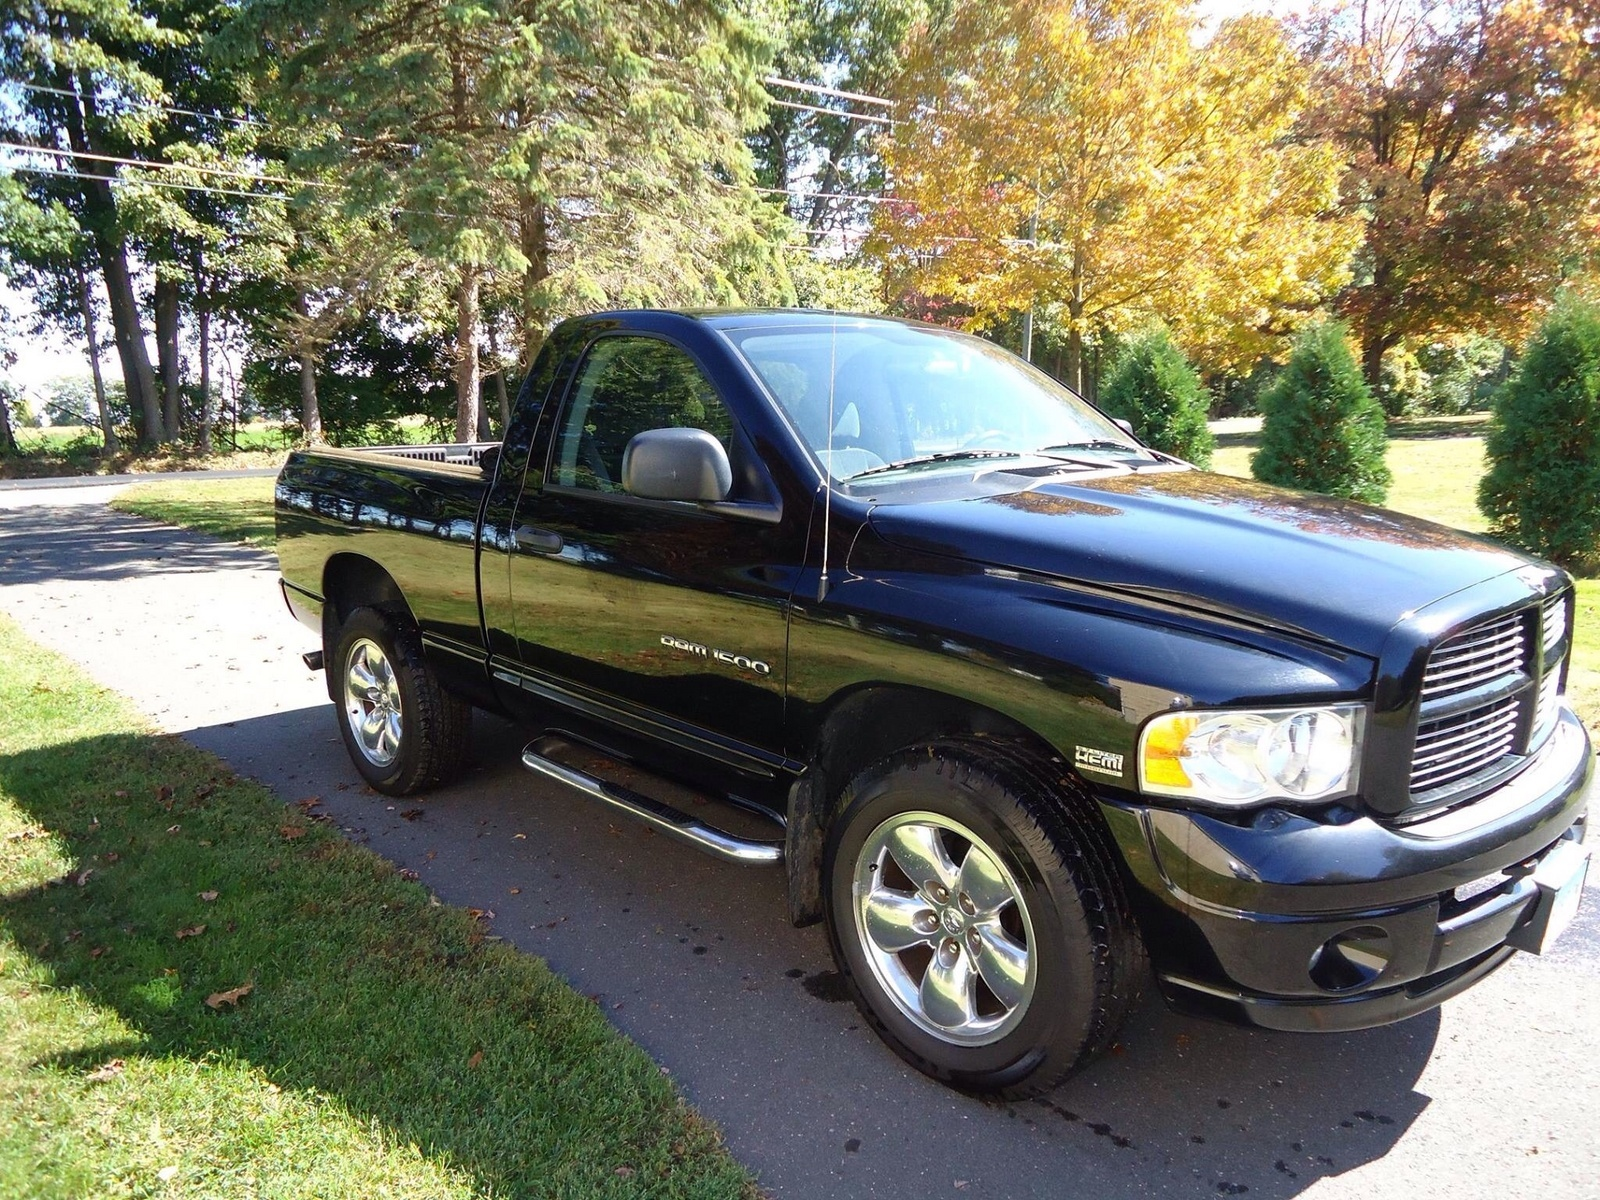 Dodge Ram 1500 Questions - Have a Dodge Ram 1500 w/ 5.7 L Hemi. Mpg is  11.4. How can I make it mo... - CarGurus